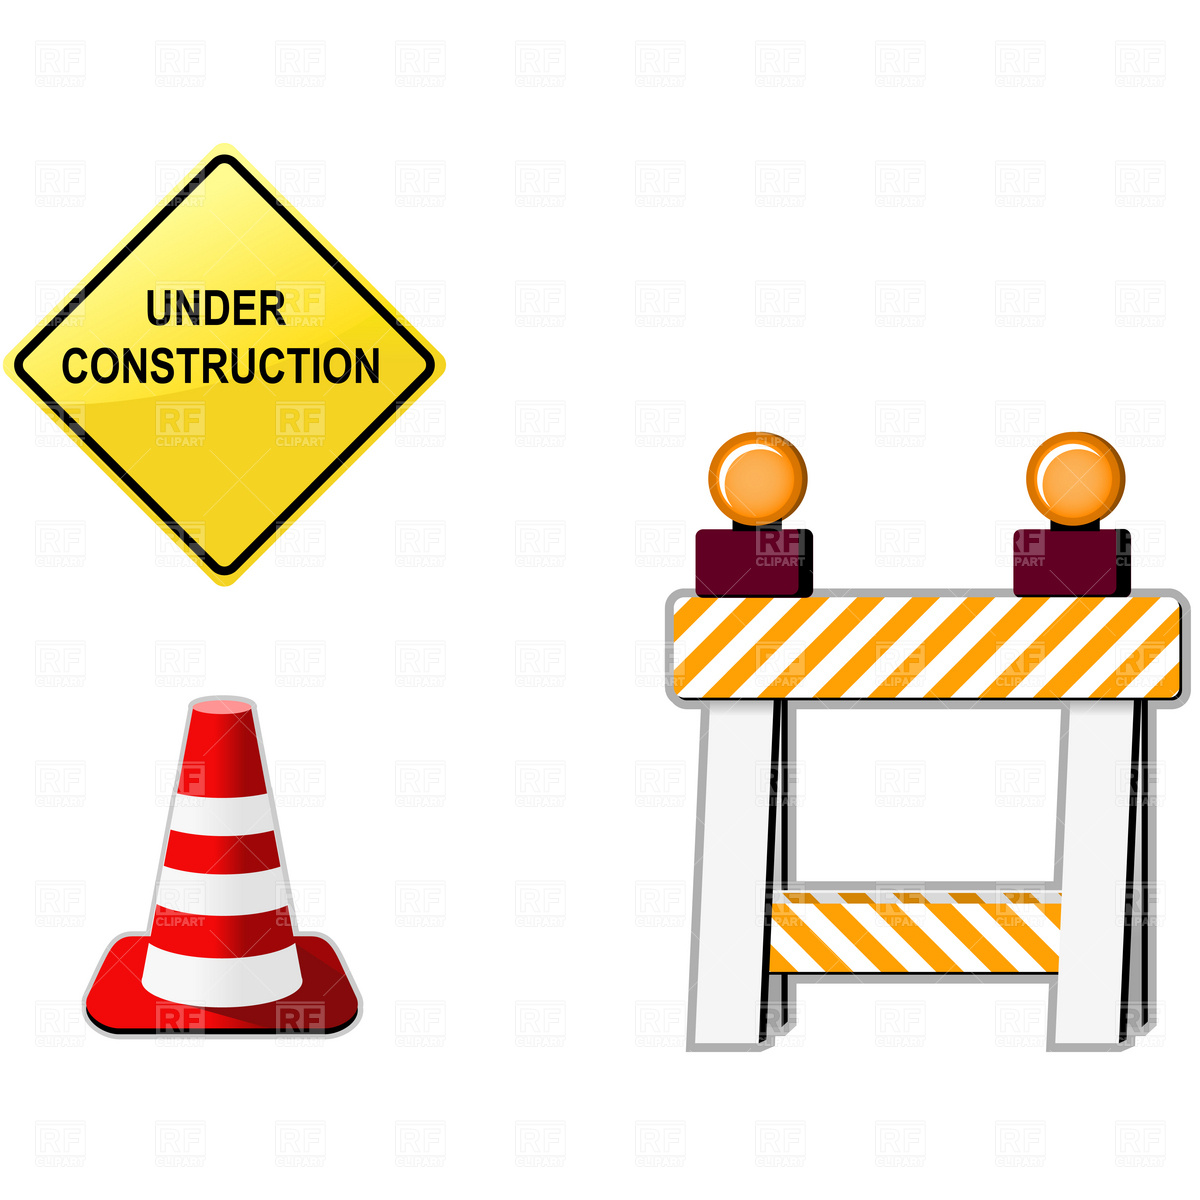 Under image download best. Free construction clipart images